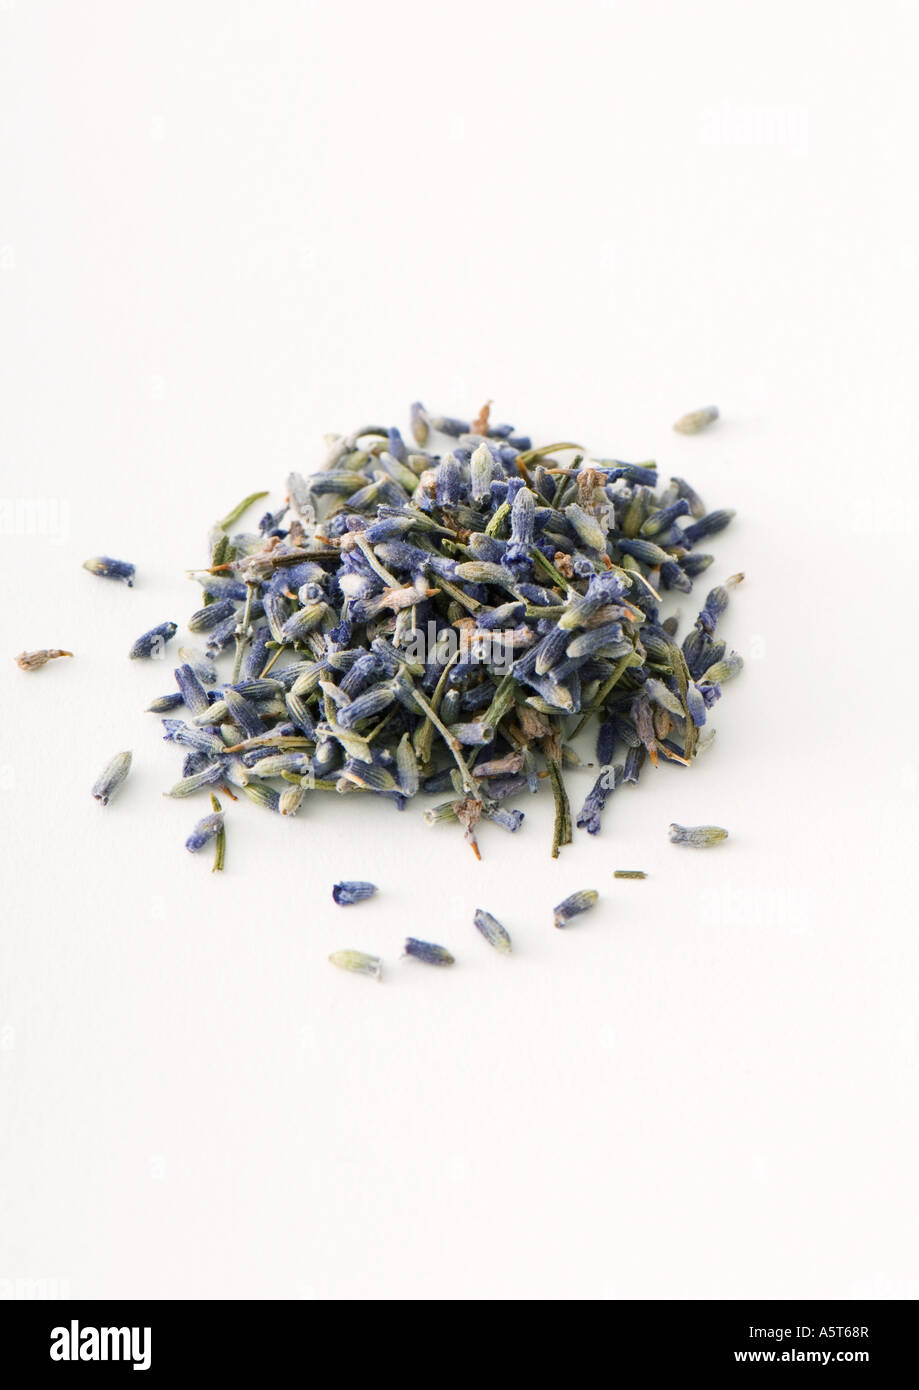 Dried lavender flowers - Stock Image